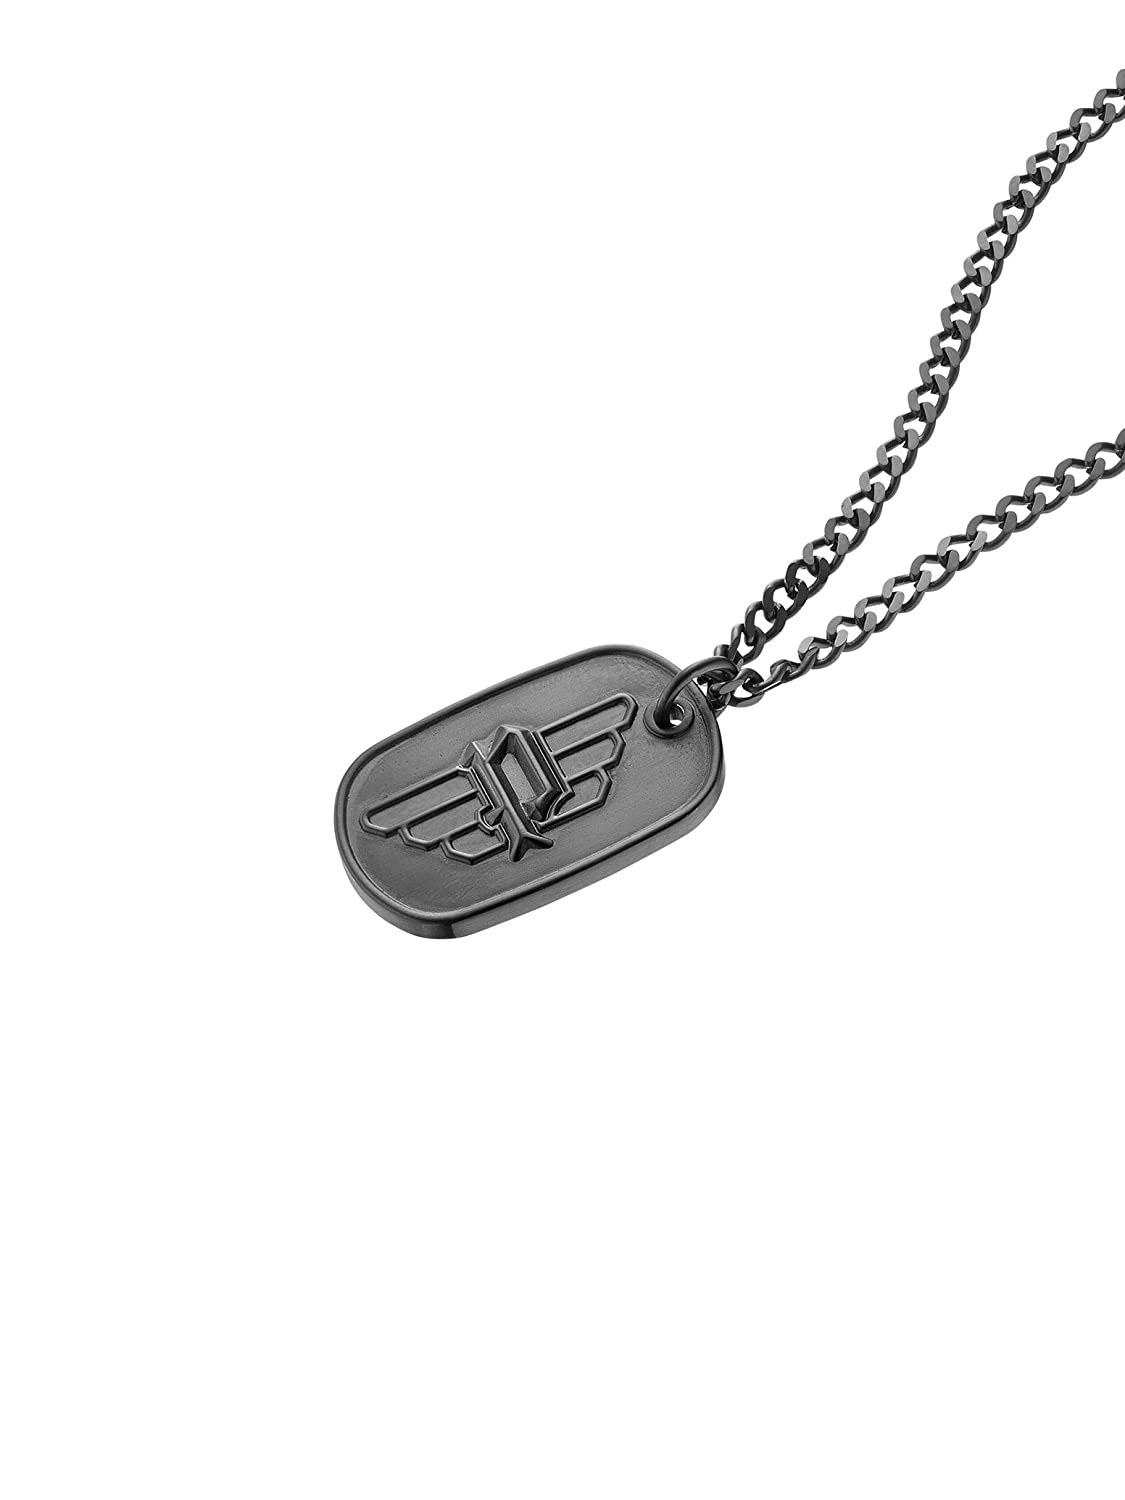 PJ25874PSB.03 Police Men Stainless Steel Pendant Necklace